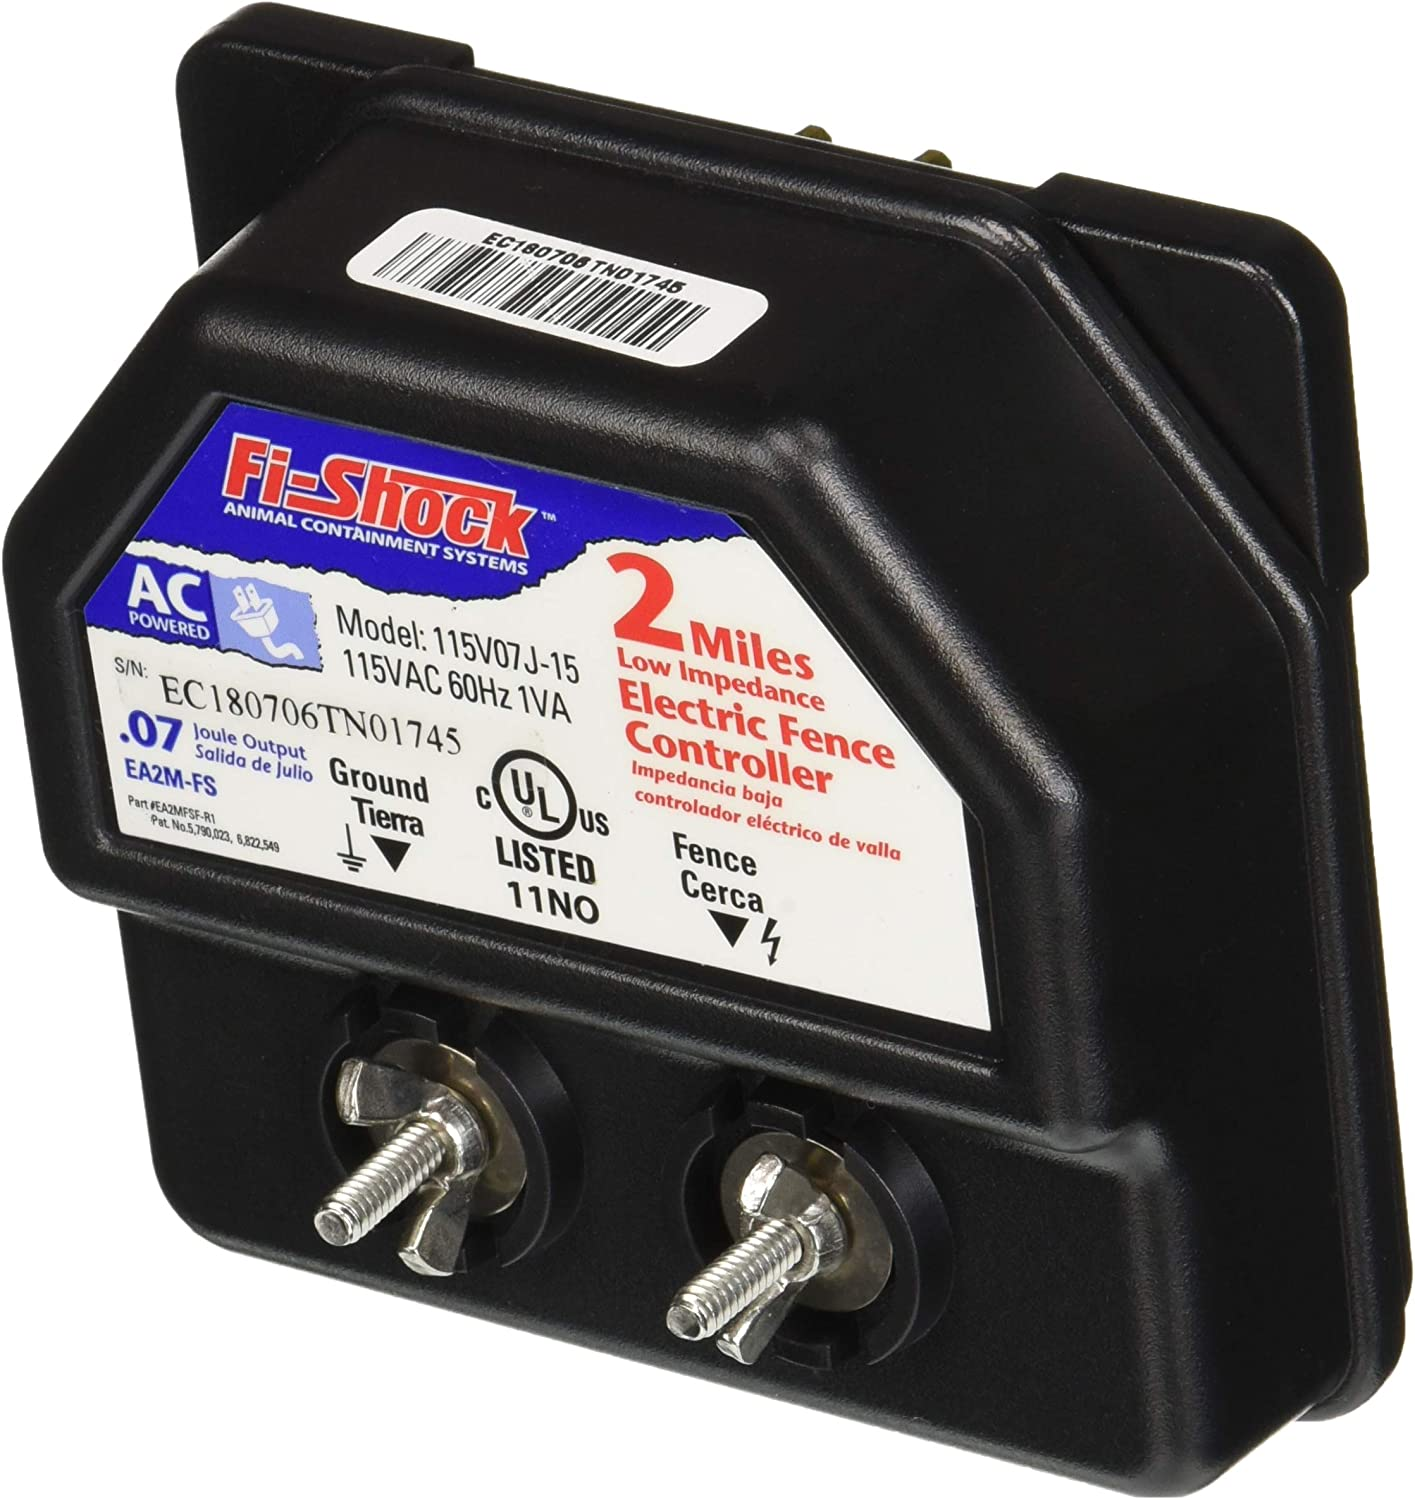 Fi-Shock EA2M-FS 2-Mile Low Impedance Electric Fence Energizer